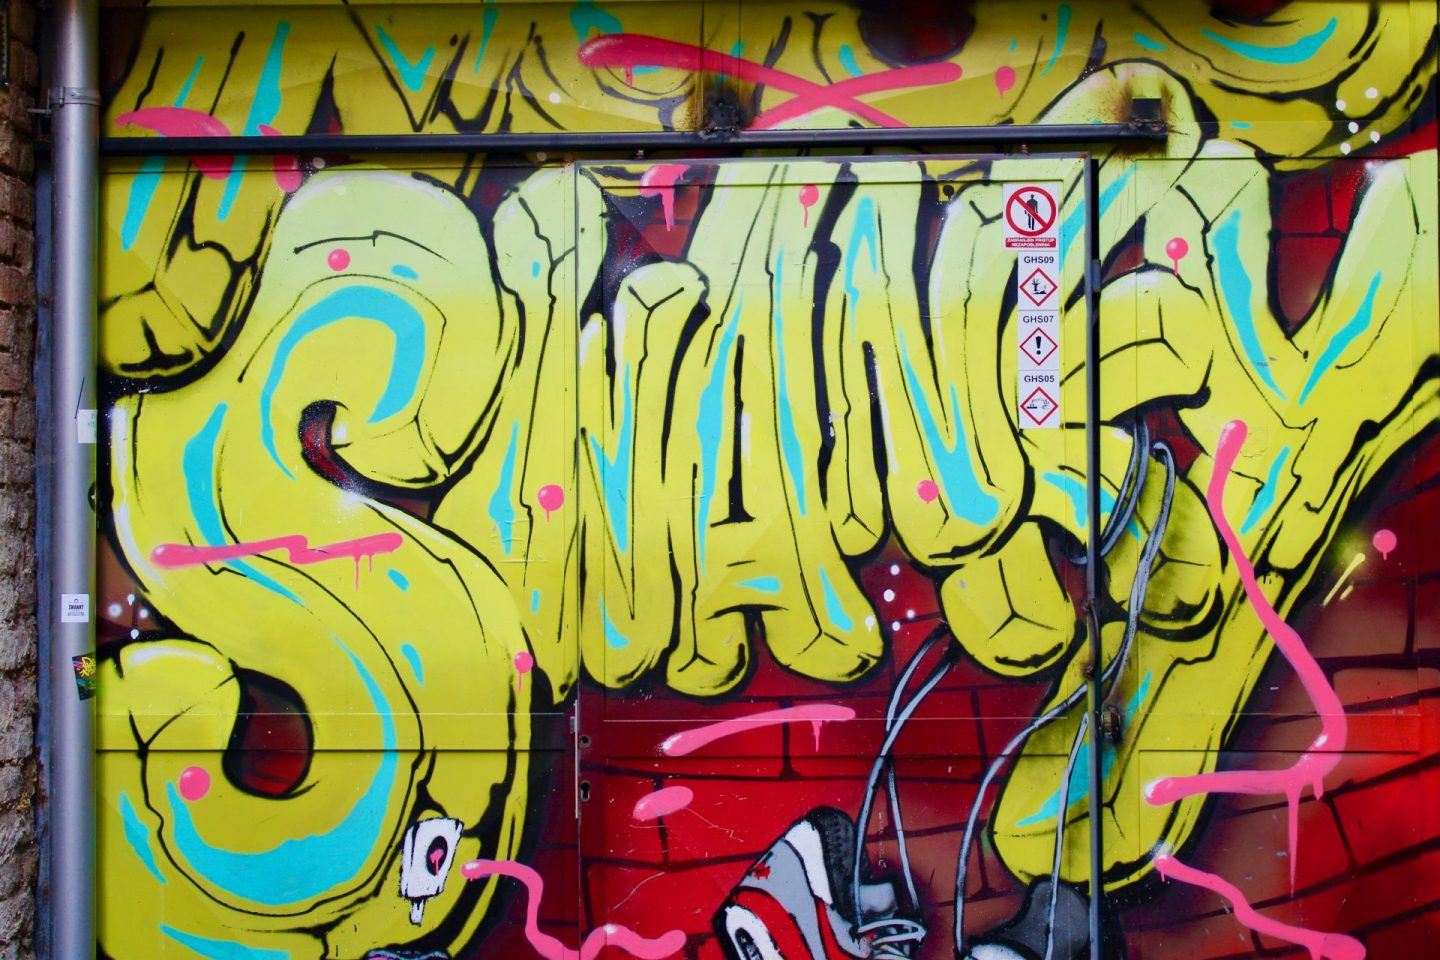 A graffiti wall in a courtyard at Swanky Hostel, with the word Swanky in bright colours